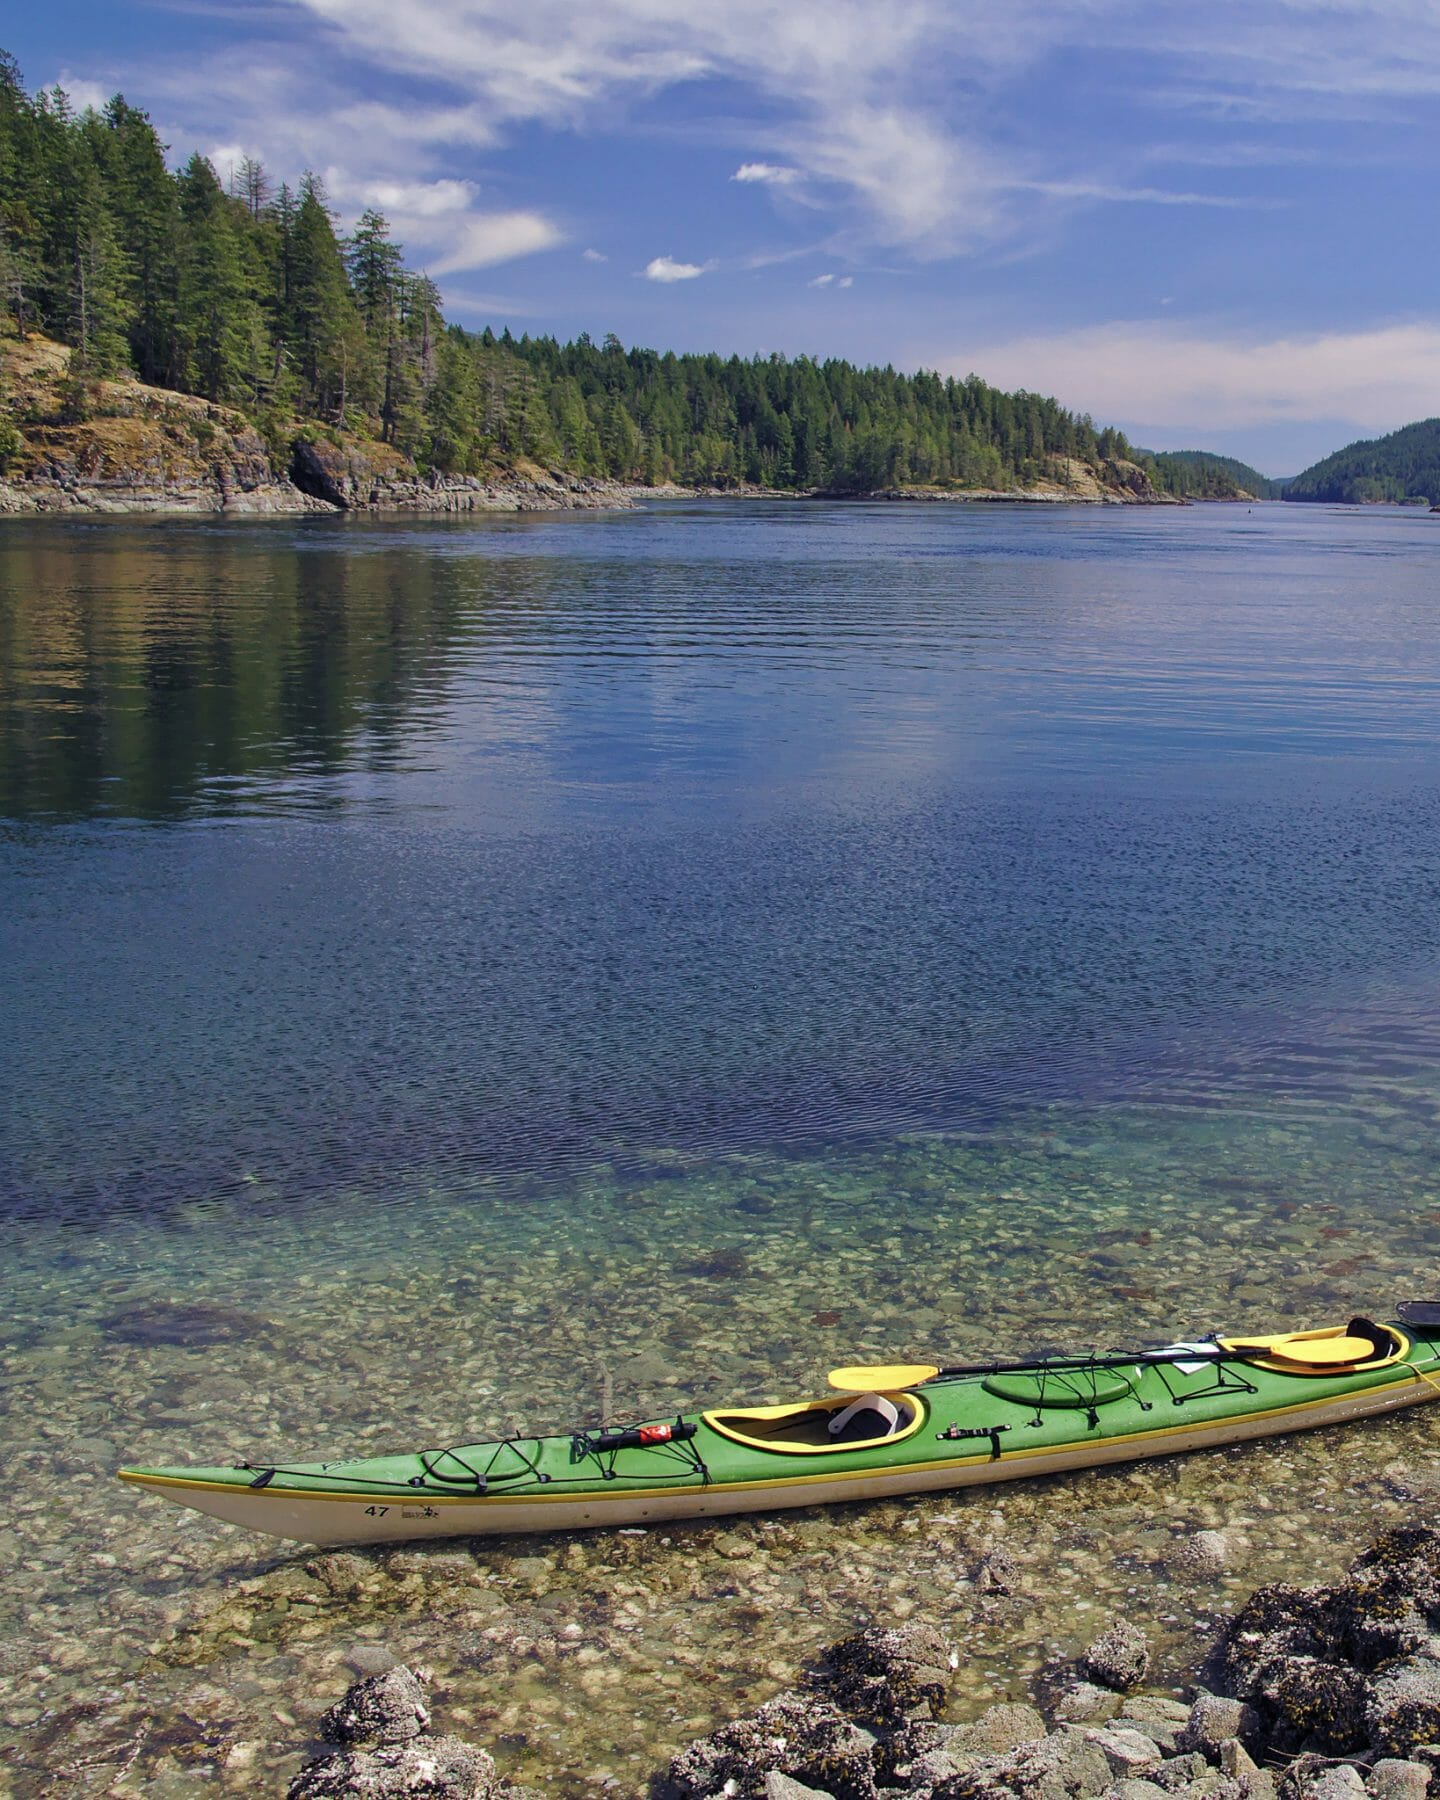 Things to do in Powell River - Kayaking